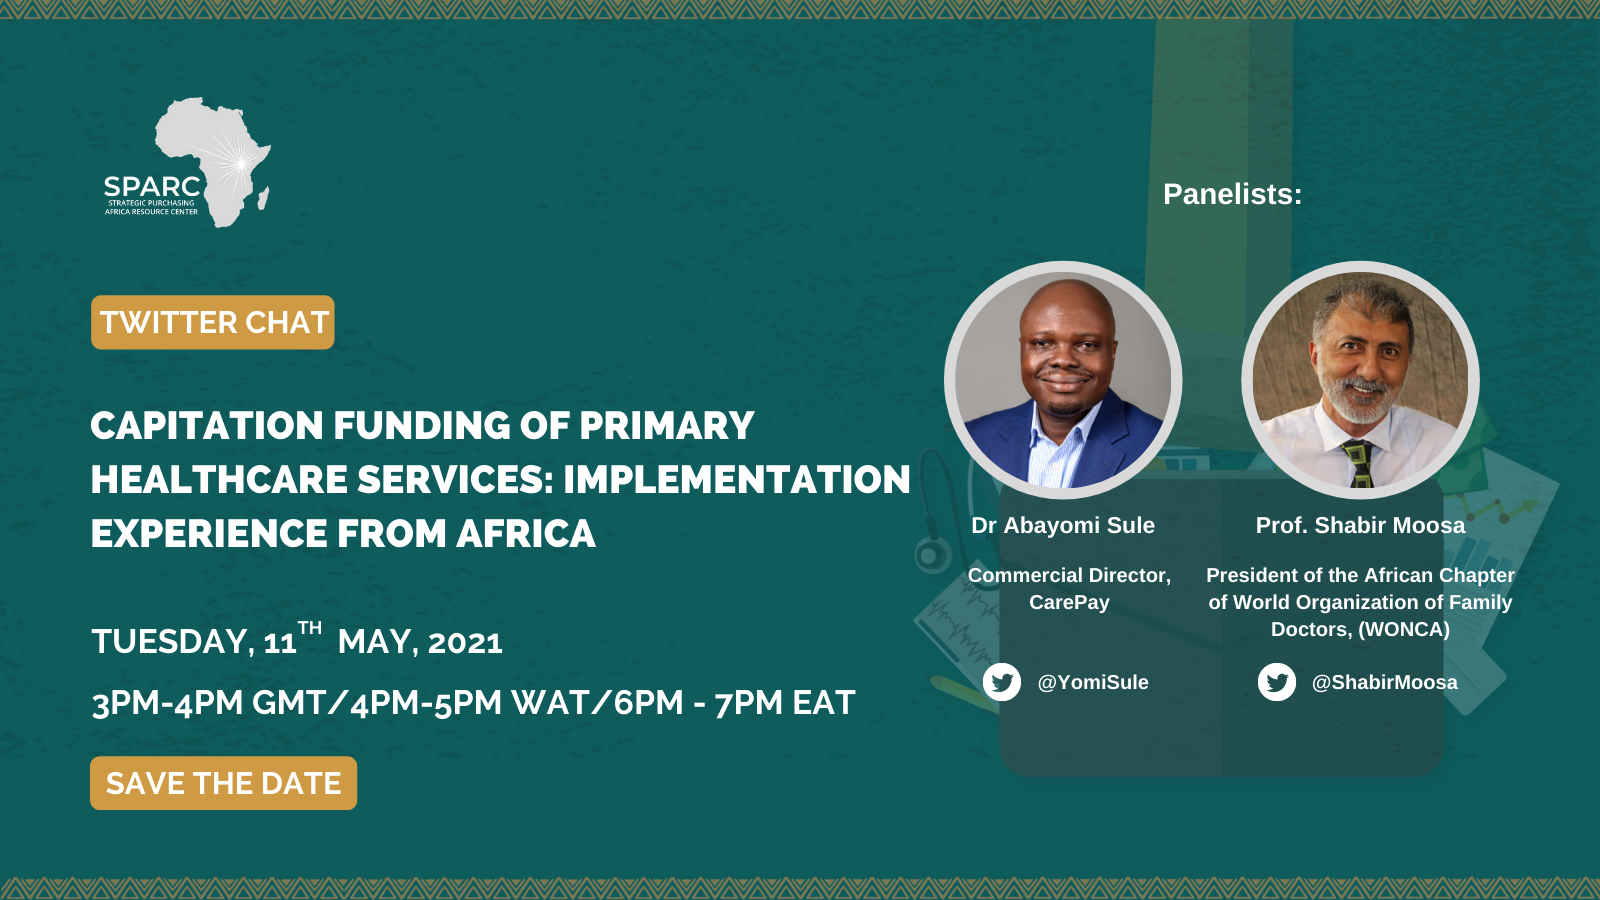 Key Messages from SPARCchat XIII: 'Capitation Funding of Primary Healthcare Services: Implementation Experience from Africa.'